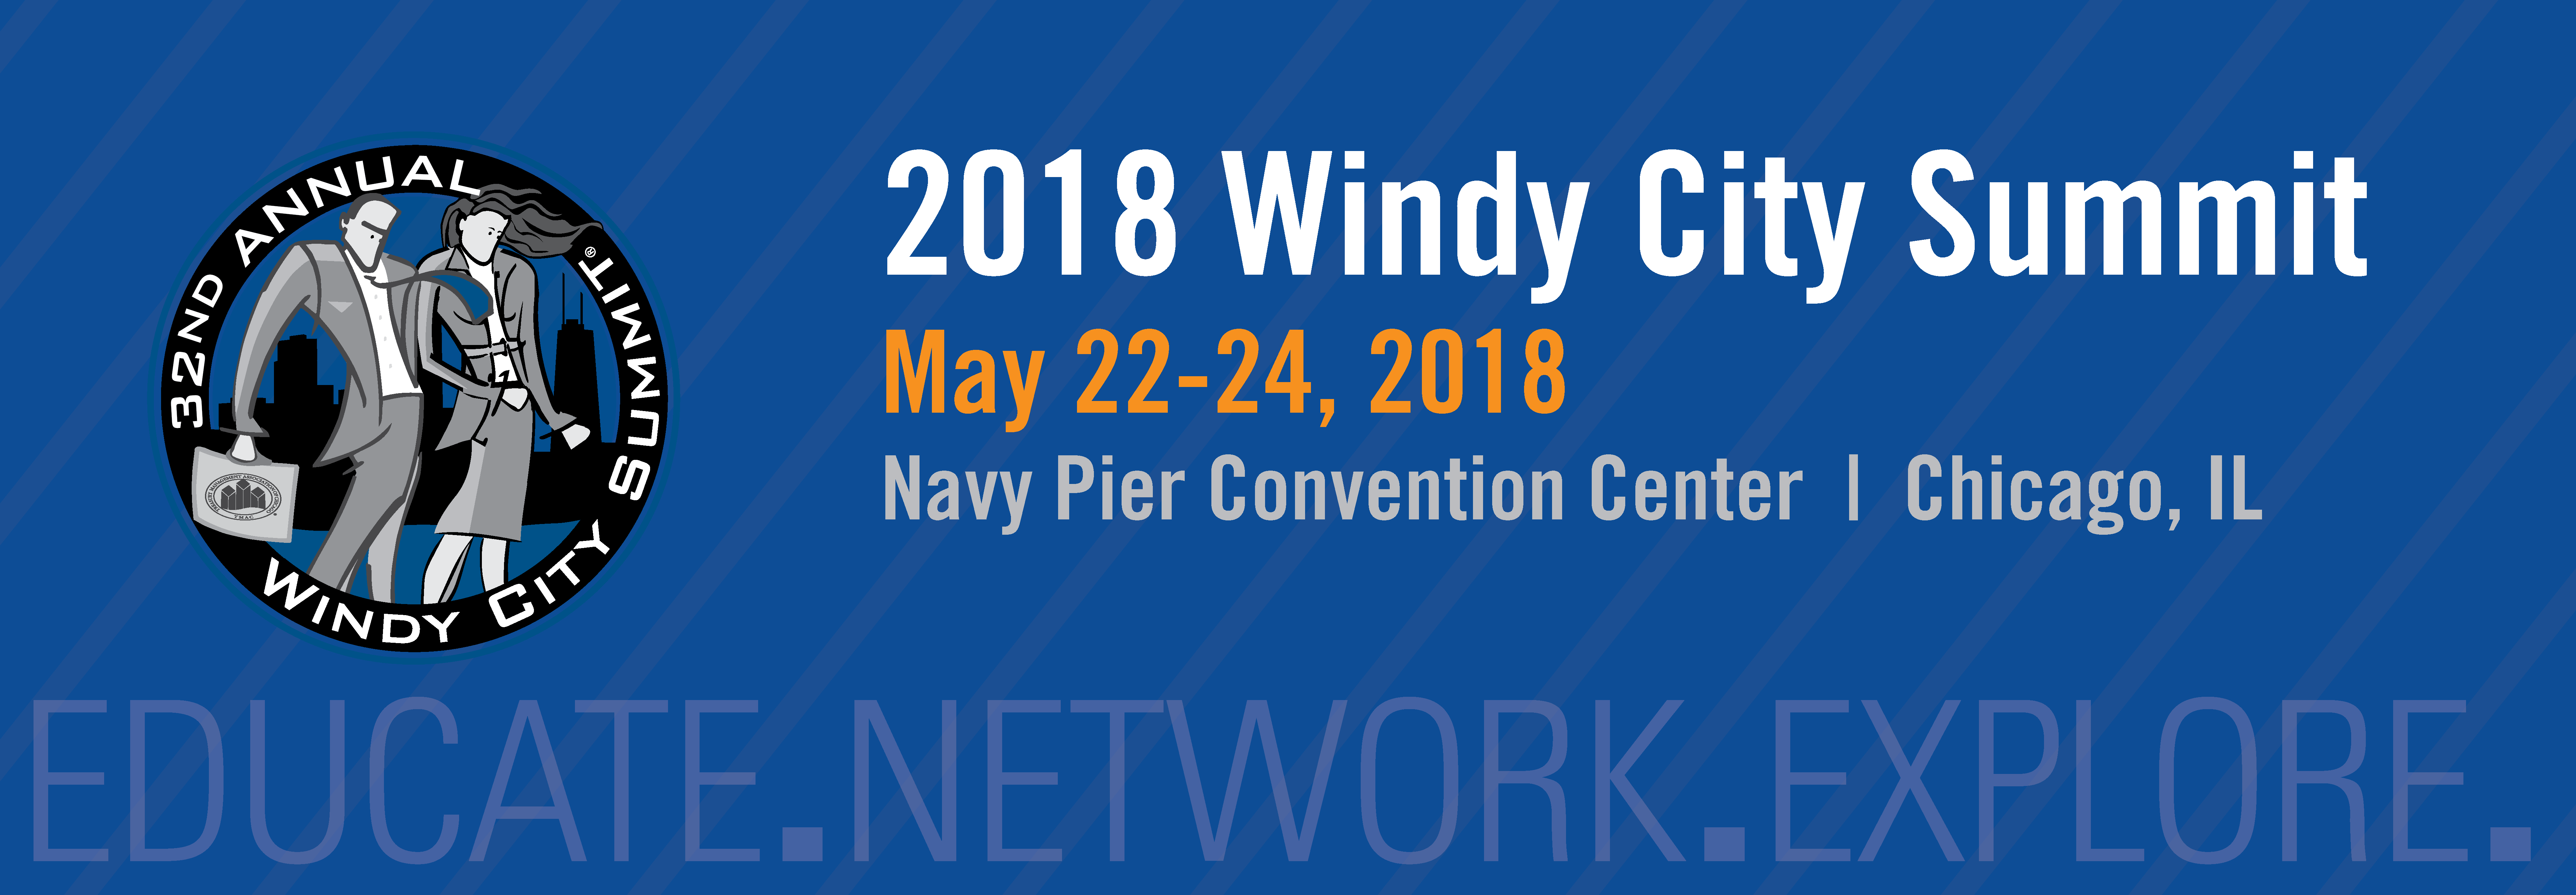 Windy City Summit